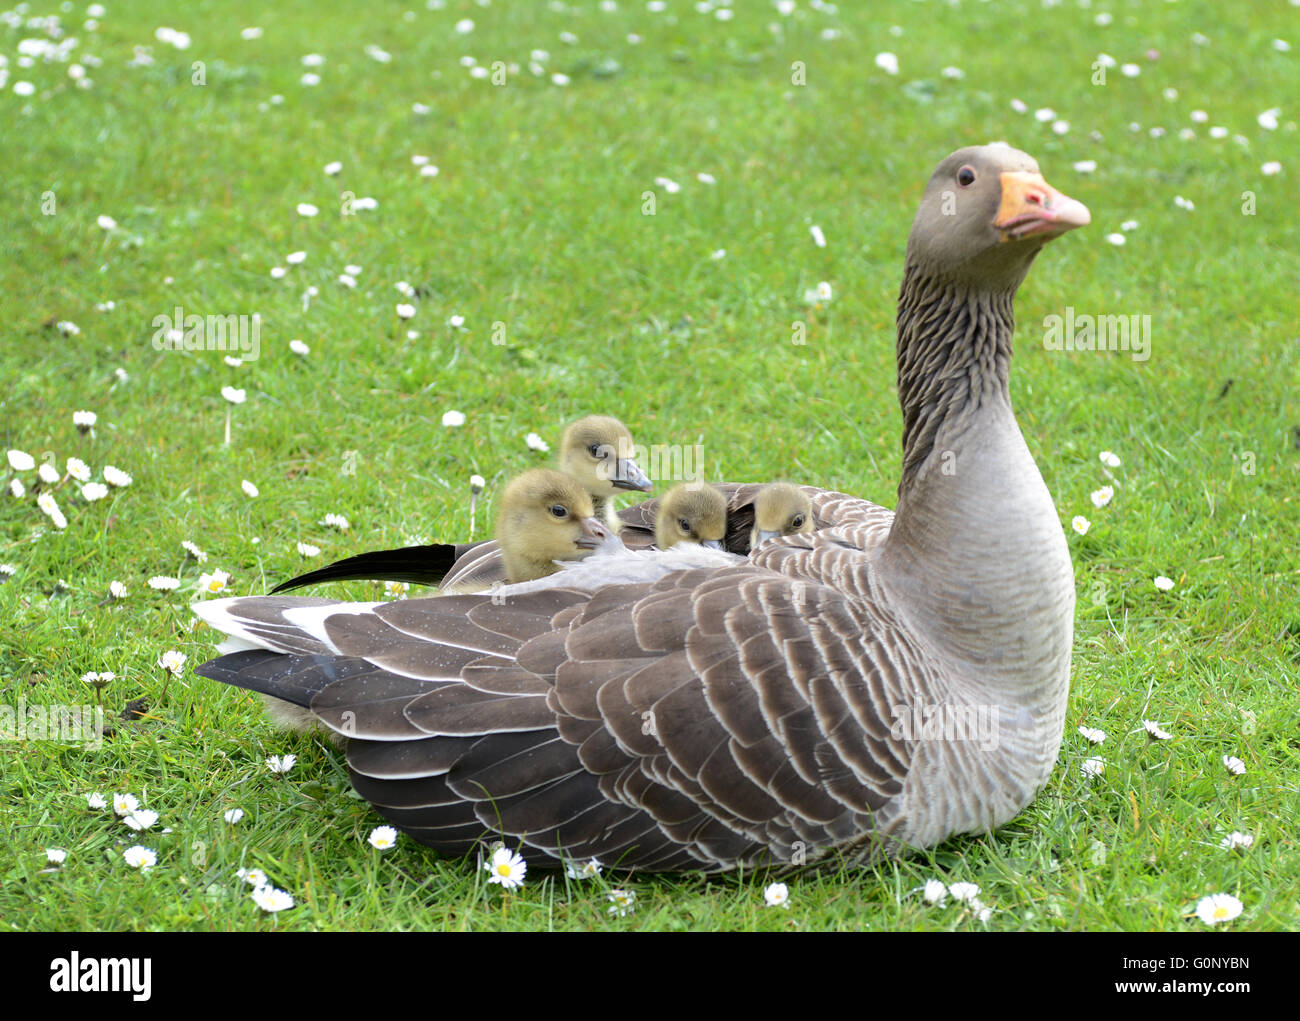 A goose protecting her young chicks. - Stock Image